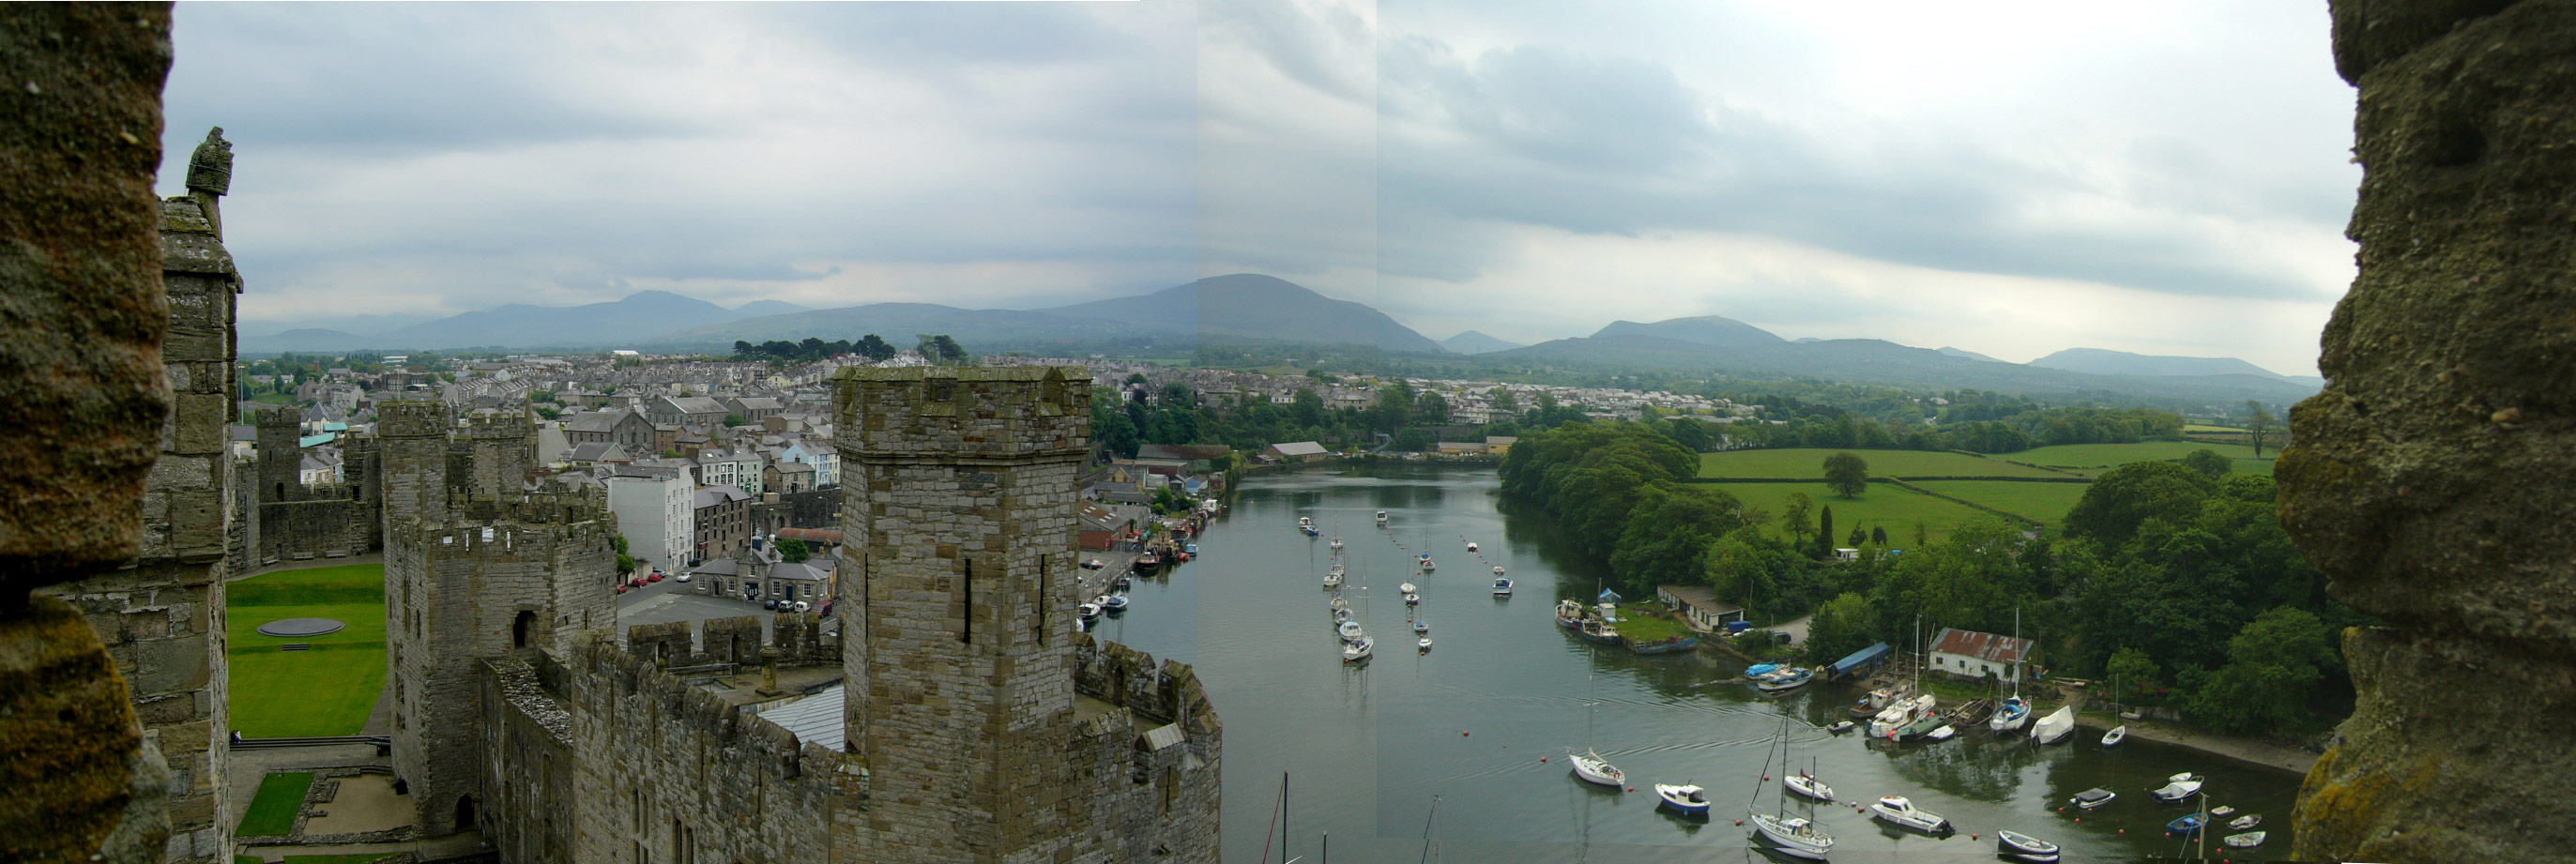 Caernarfon Castle Panoramic View